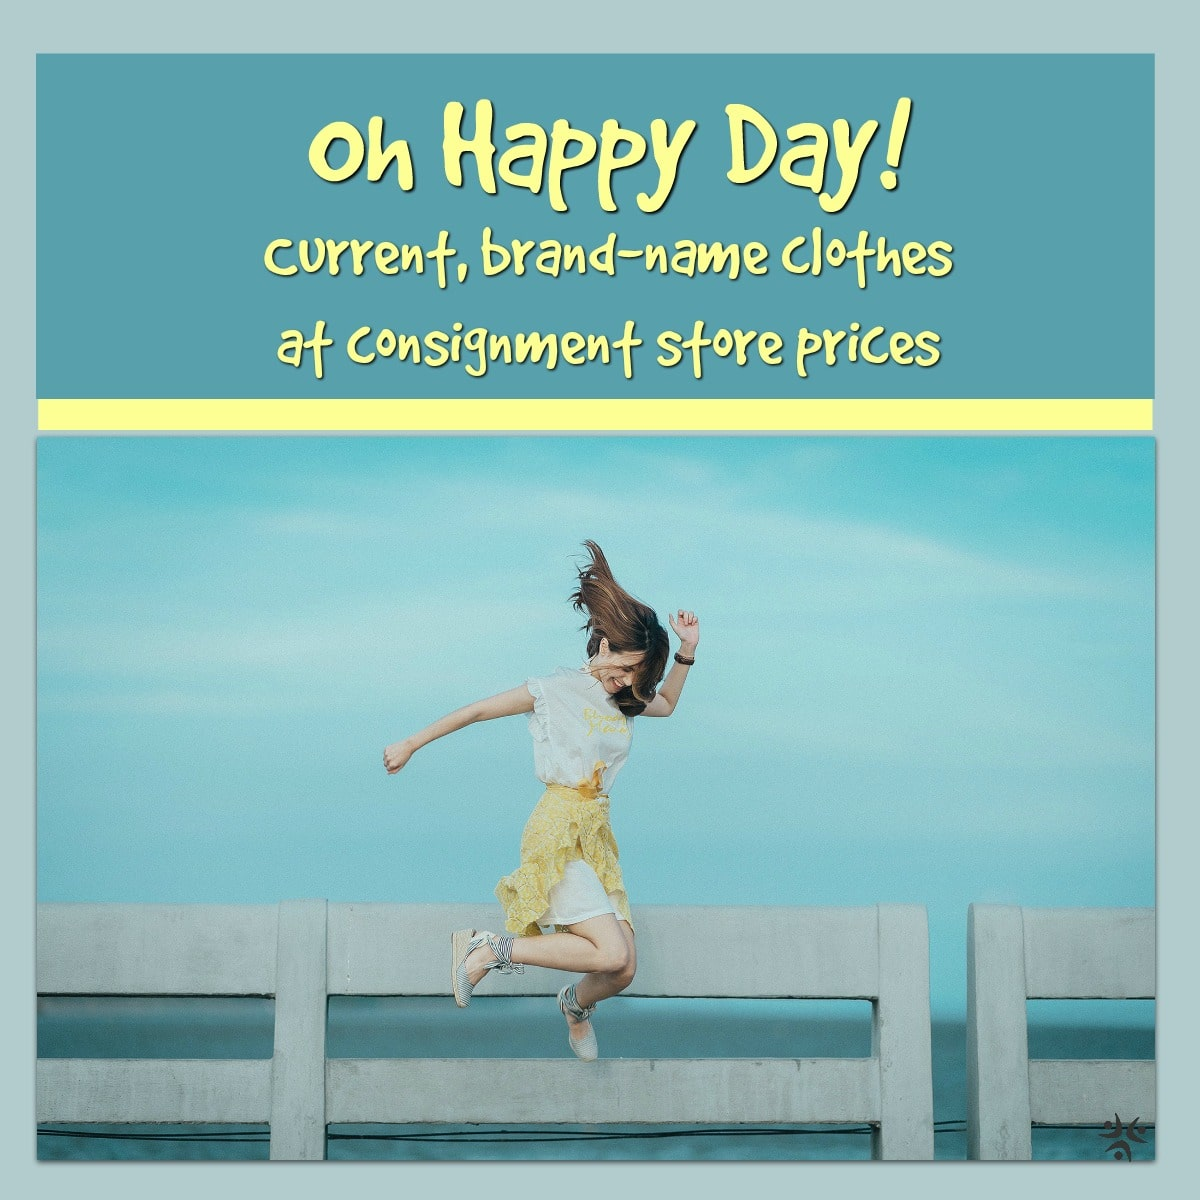 Amazing merchandise at consignment prices